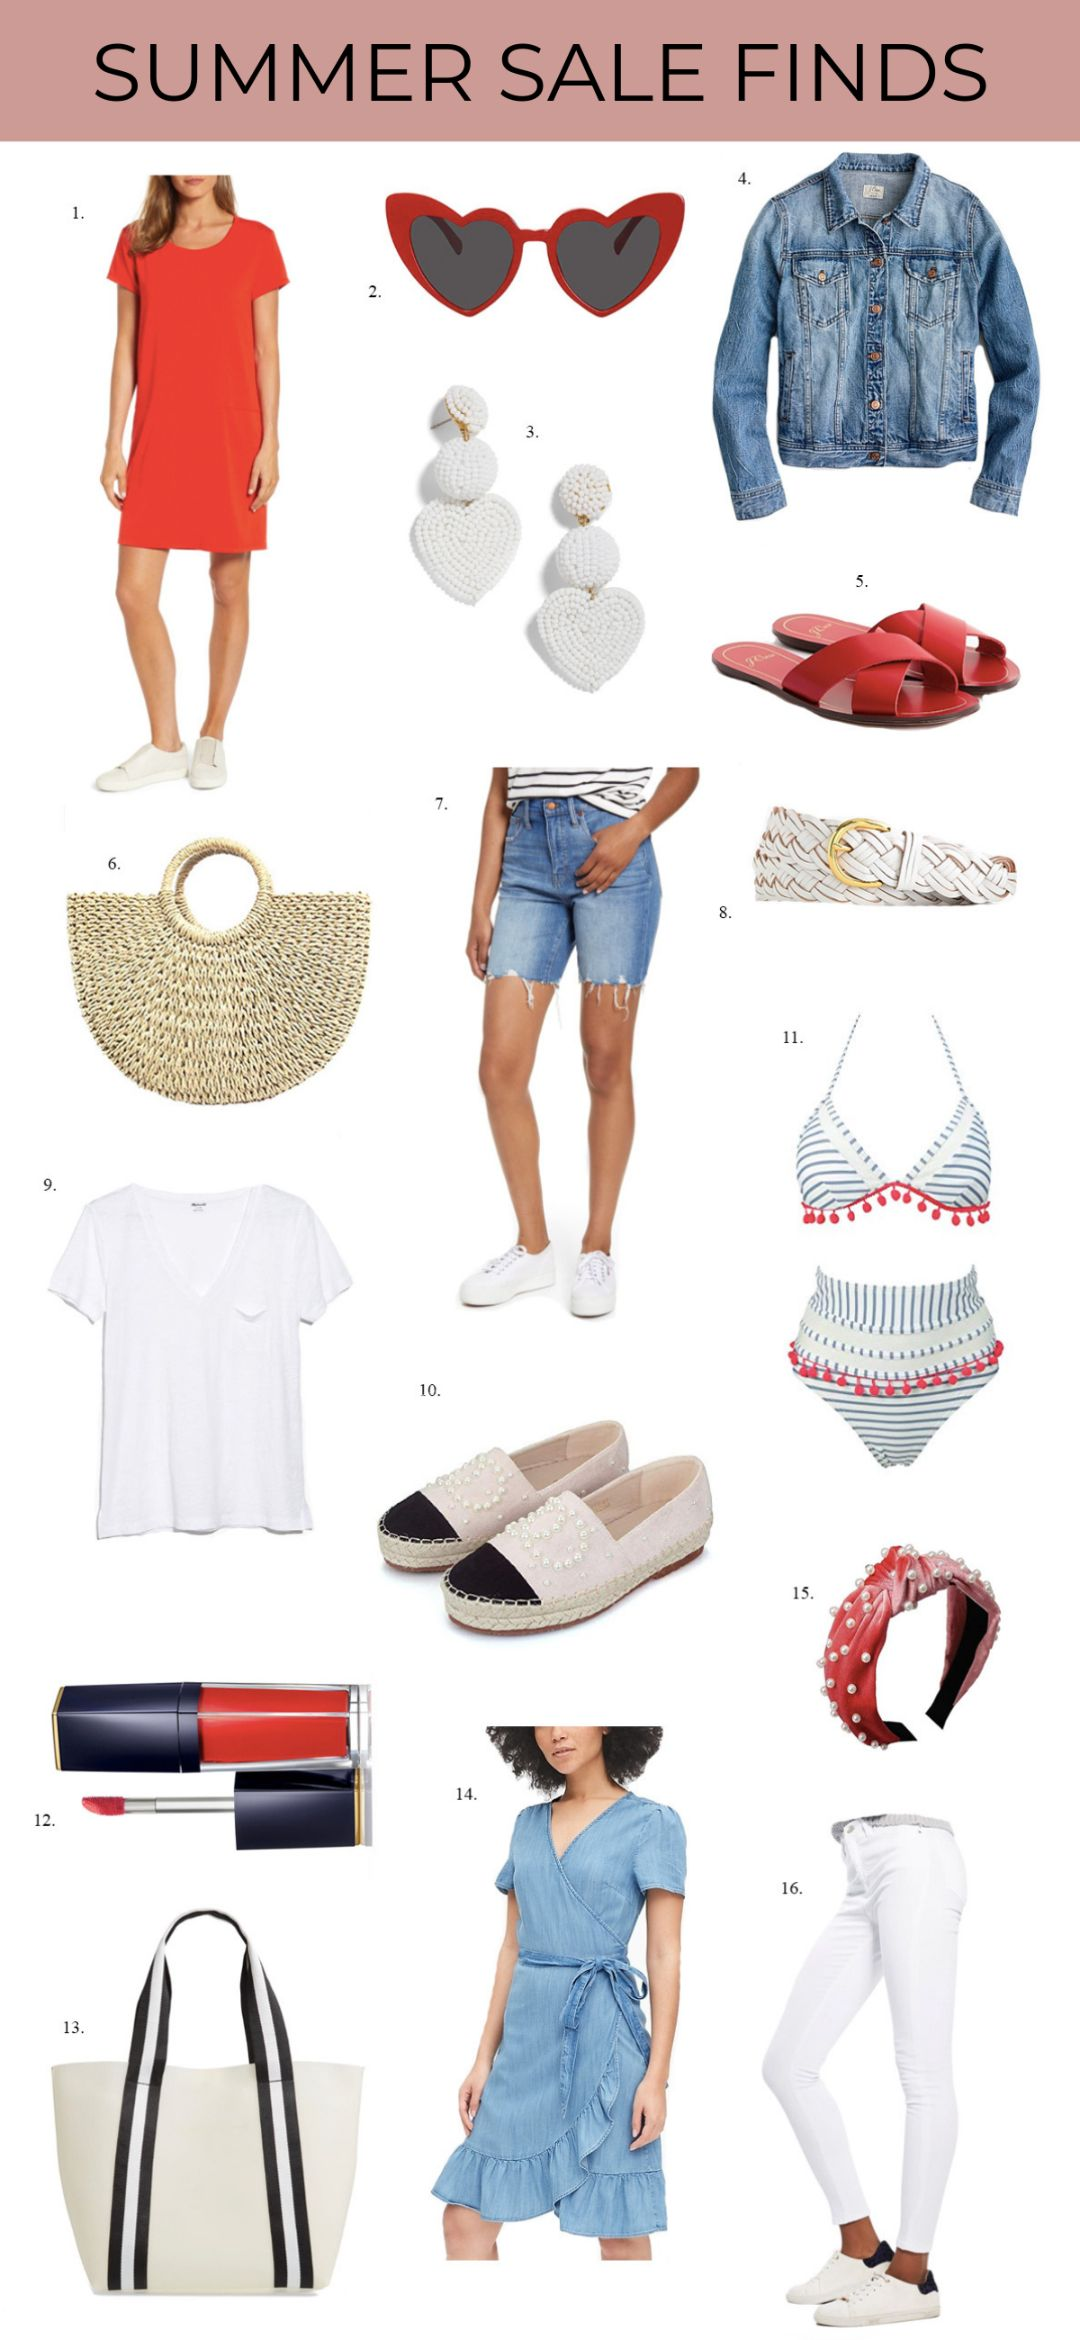 4th of july sales weekend summer sale 2019 promo pinterest fashion